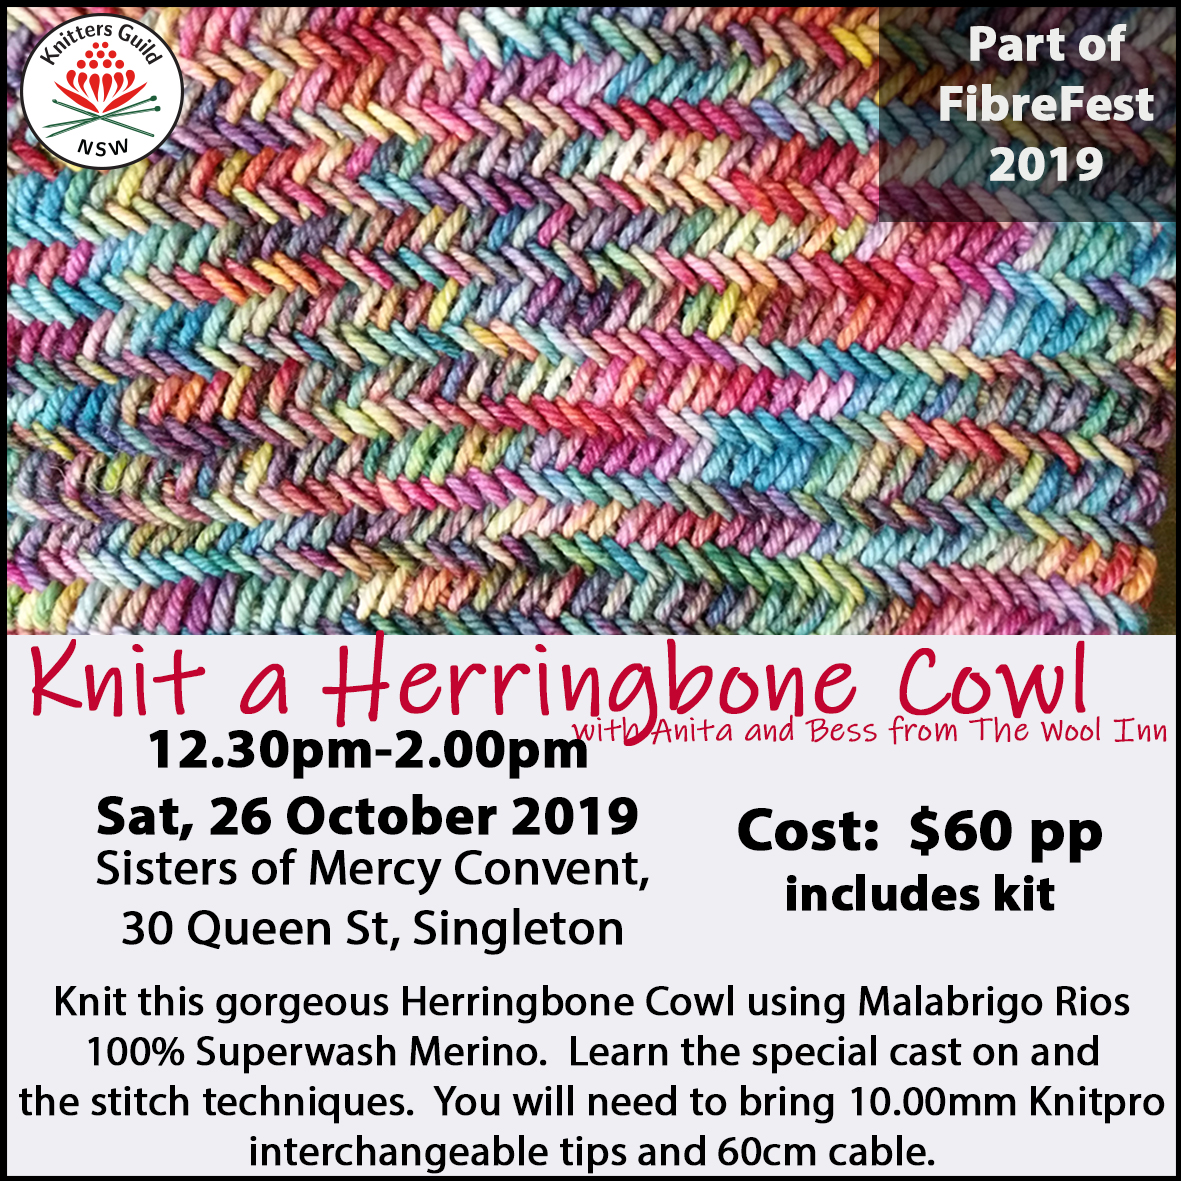 HerringboneCowl workshop